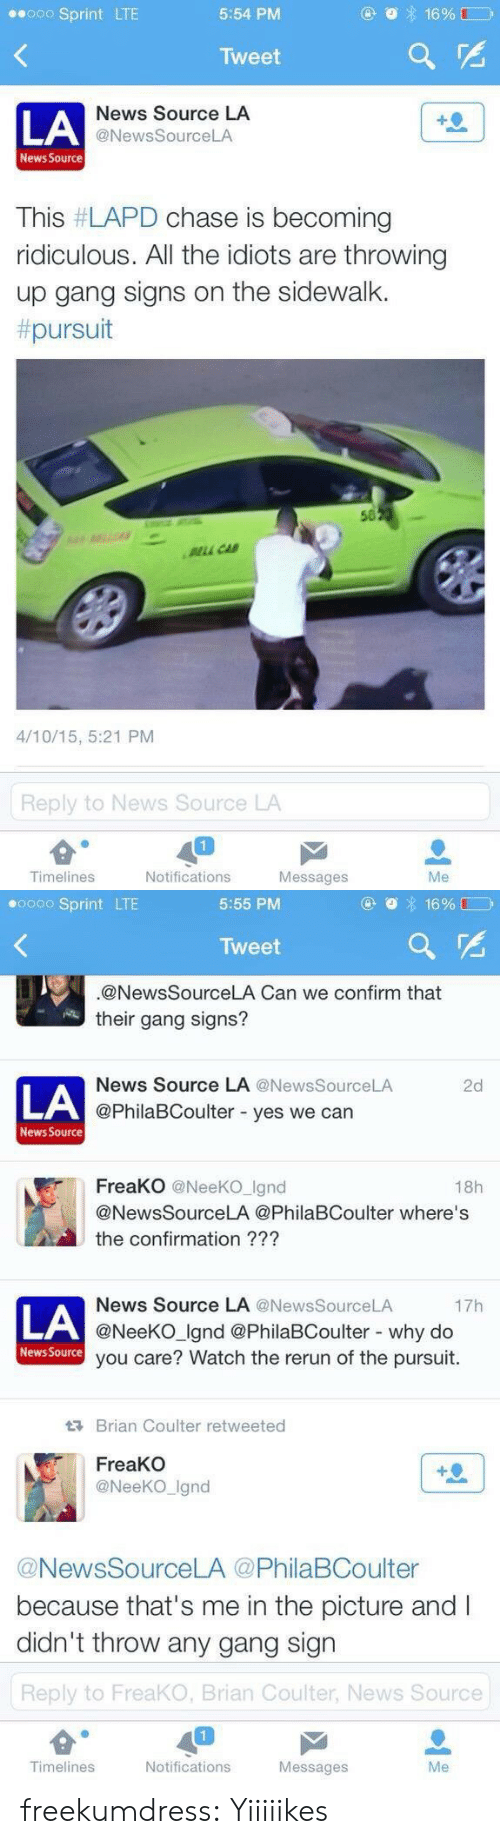 Gang Sign: Sprint LTE  5:54 PM  Tweet  LA  News Source LA  @NewsSourceLA  News Source  This #LAPD chase is becoming  ridiculous. All the idiots are throwing  up gang signs on the sidewalk.  pursuit  50  LL CA  4/10/15, 5:21 PM  Reply to News Source LA  Timelines  Notifications  Messages  Me   0 Sprint LTE  5:55 PM  Tweet  @NewsSourceLA Can we confirm that  their gang signs?  News Source LA @News SourceLA  2d  LA  @PhilaBCoulter - yes we can  News Source  FreaKO @NeeKO Ignd  18h  @NewsSourceLA @PhilaBCoulter where's  the confirmation ???  News Source LA @NewsSourceLA  @NeeKO Ignd @PhilaBCoulter - why do  you care? Watch the rerun of the pursuit.  17h  LA  News Source  Brian Coulter retweeted  FreaKO  @NeeKO_Ignd  @NewsSourceLA @PhilaBCoulter  because that's me in the picture and I  didn't throw any gang sign  Reply to FreaKO, Brian Coulter, News Source  Timelines  Notifications  Messages  Me freekumdress: Yiiiiikes